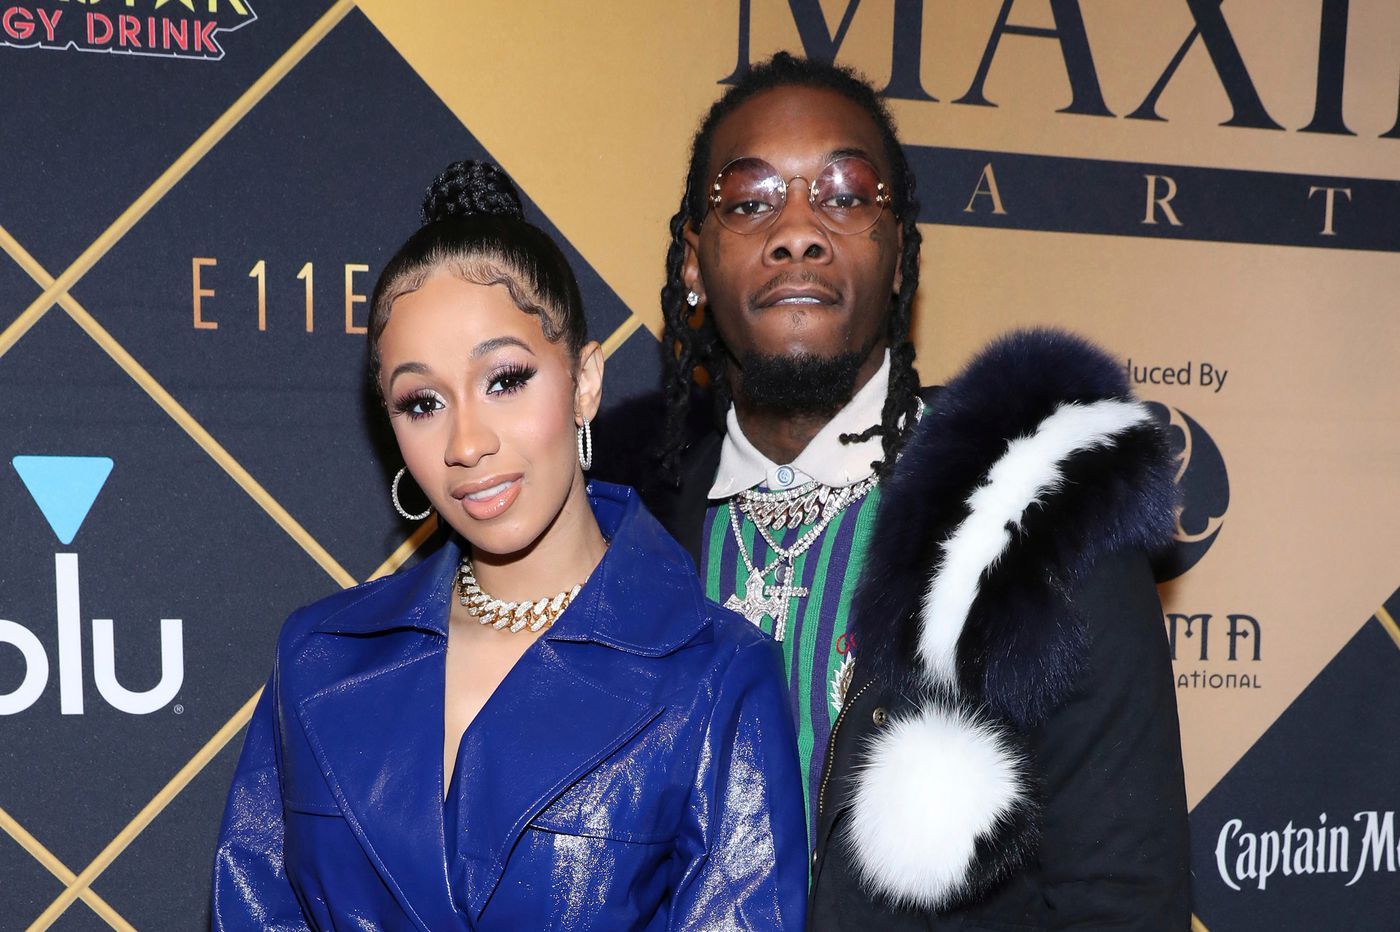 Offset's suburban childhood doesn't mean 'hood' persona is an act, says Temple prof